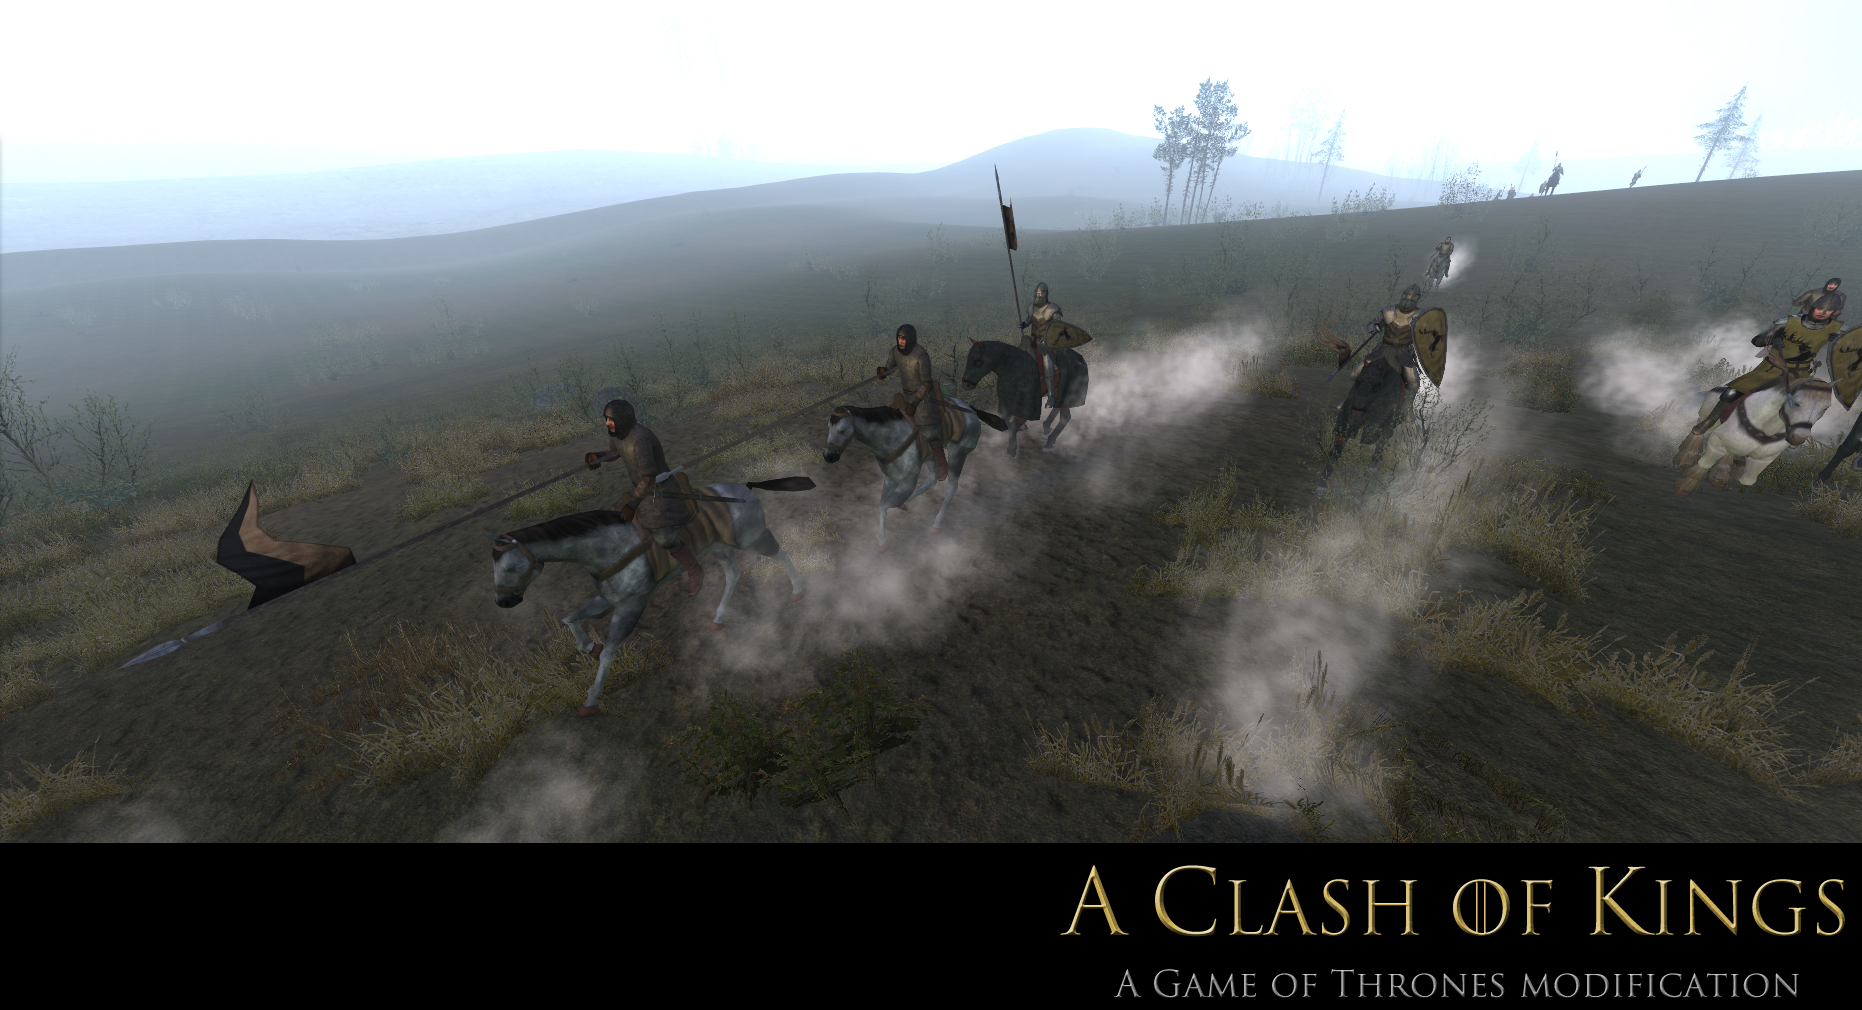 Stormlands bannermen image - A Clash of Kings (Game of